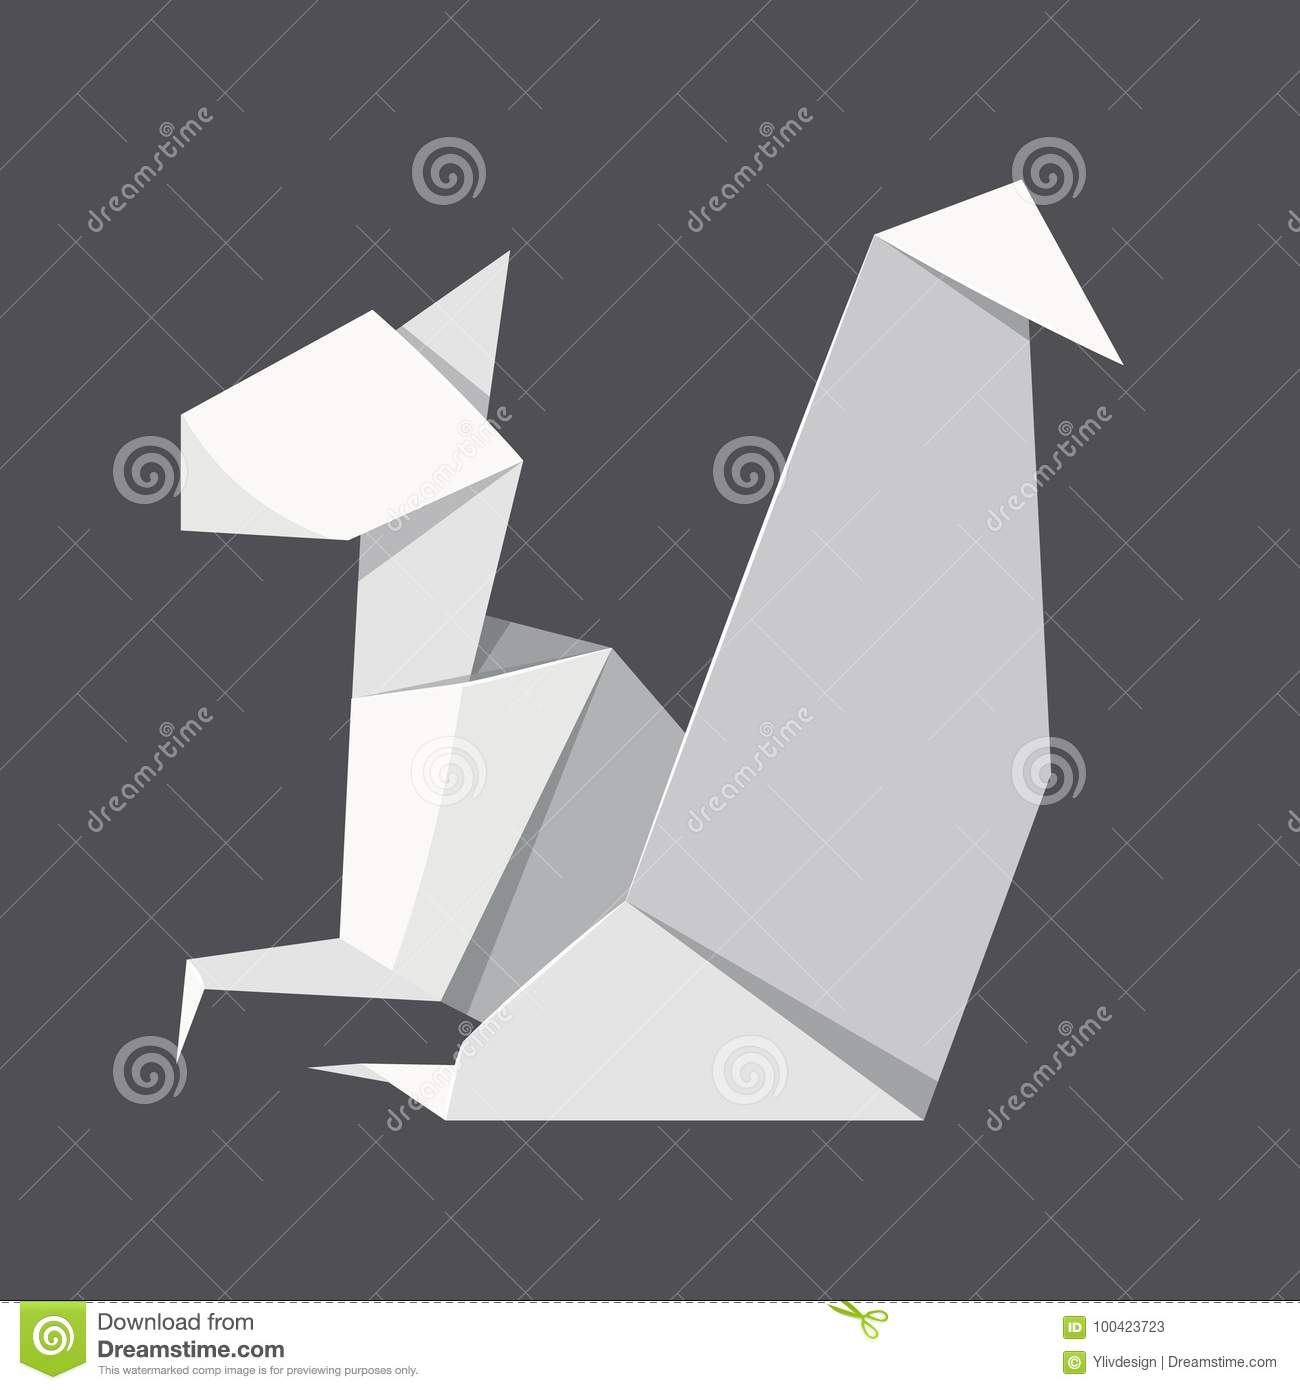 Easy Origami Squirrel Face Instructions You Can Fold Easily   1390x1300